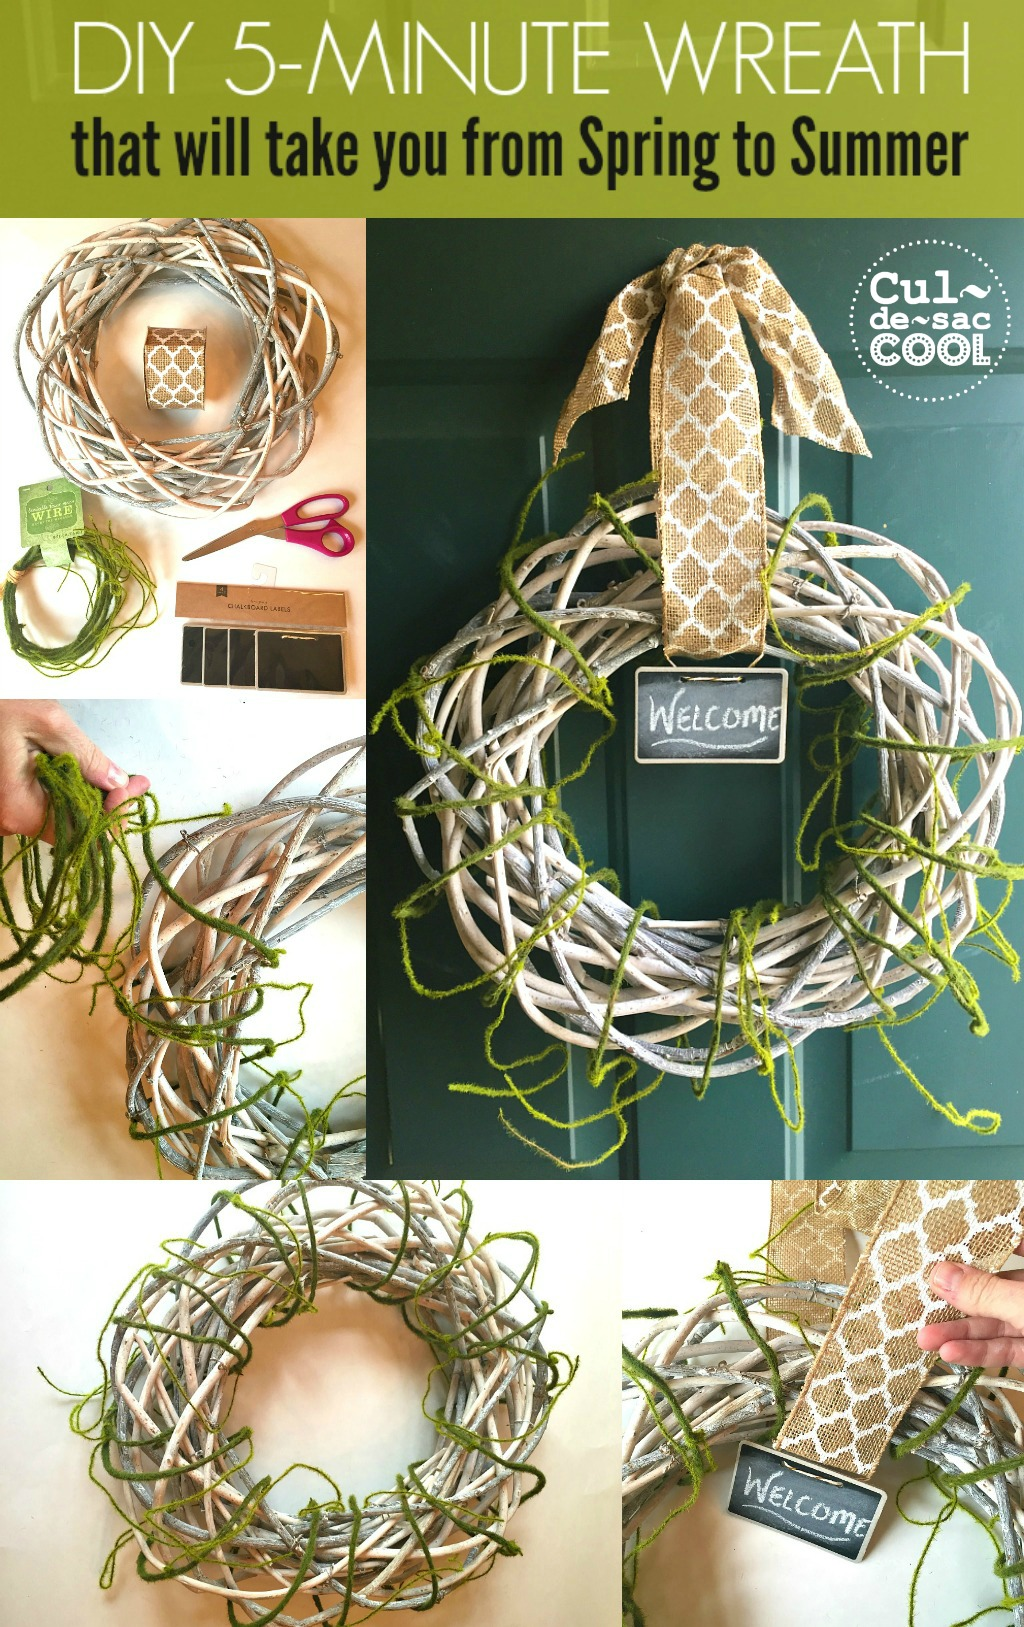 DIY 5 minute wreath Collage